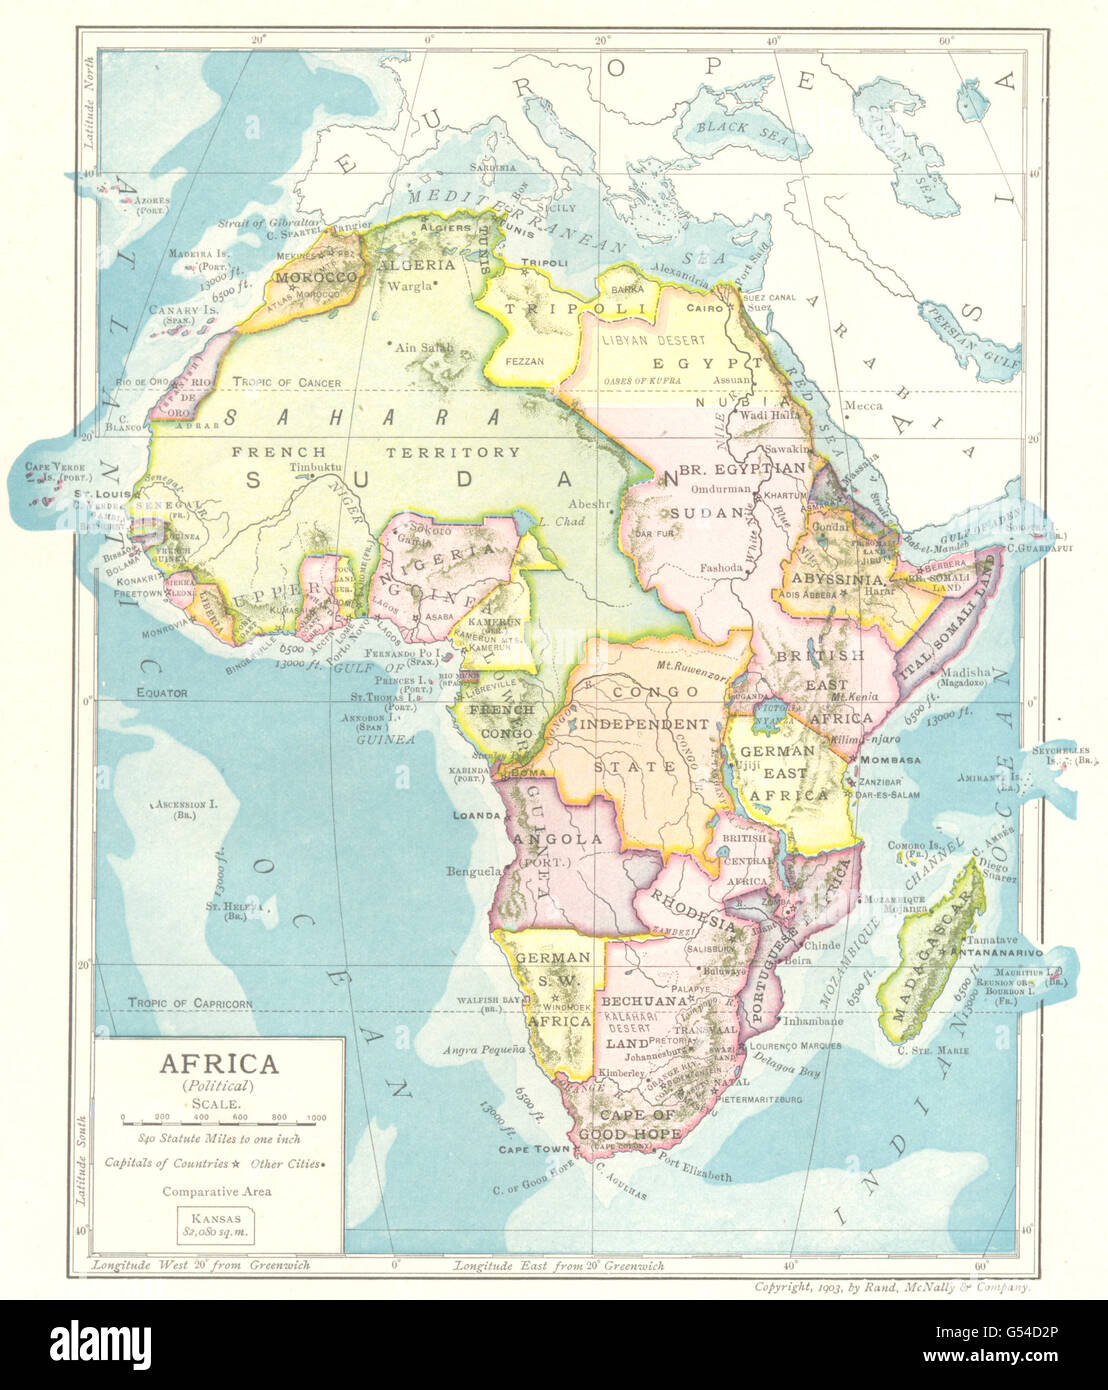 Colonial Africa Abyssinia British East Africa Rhodesia French Sudan